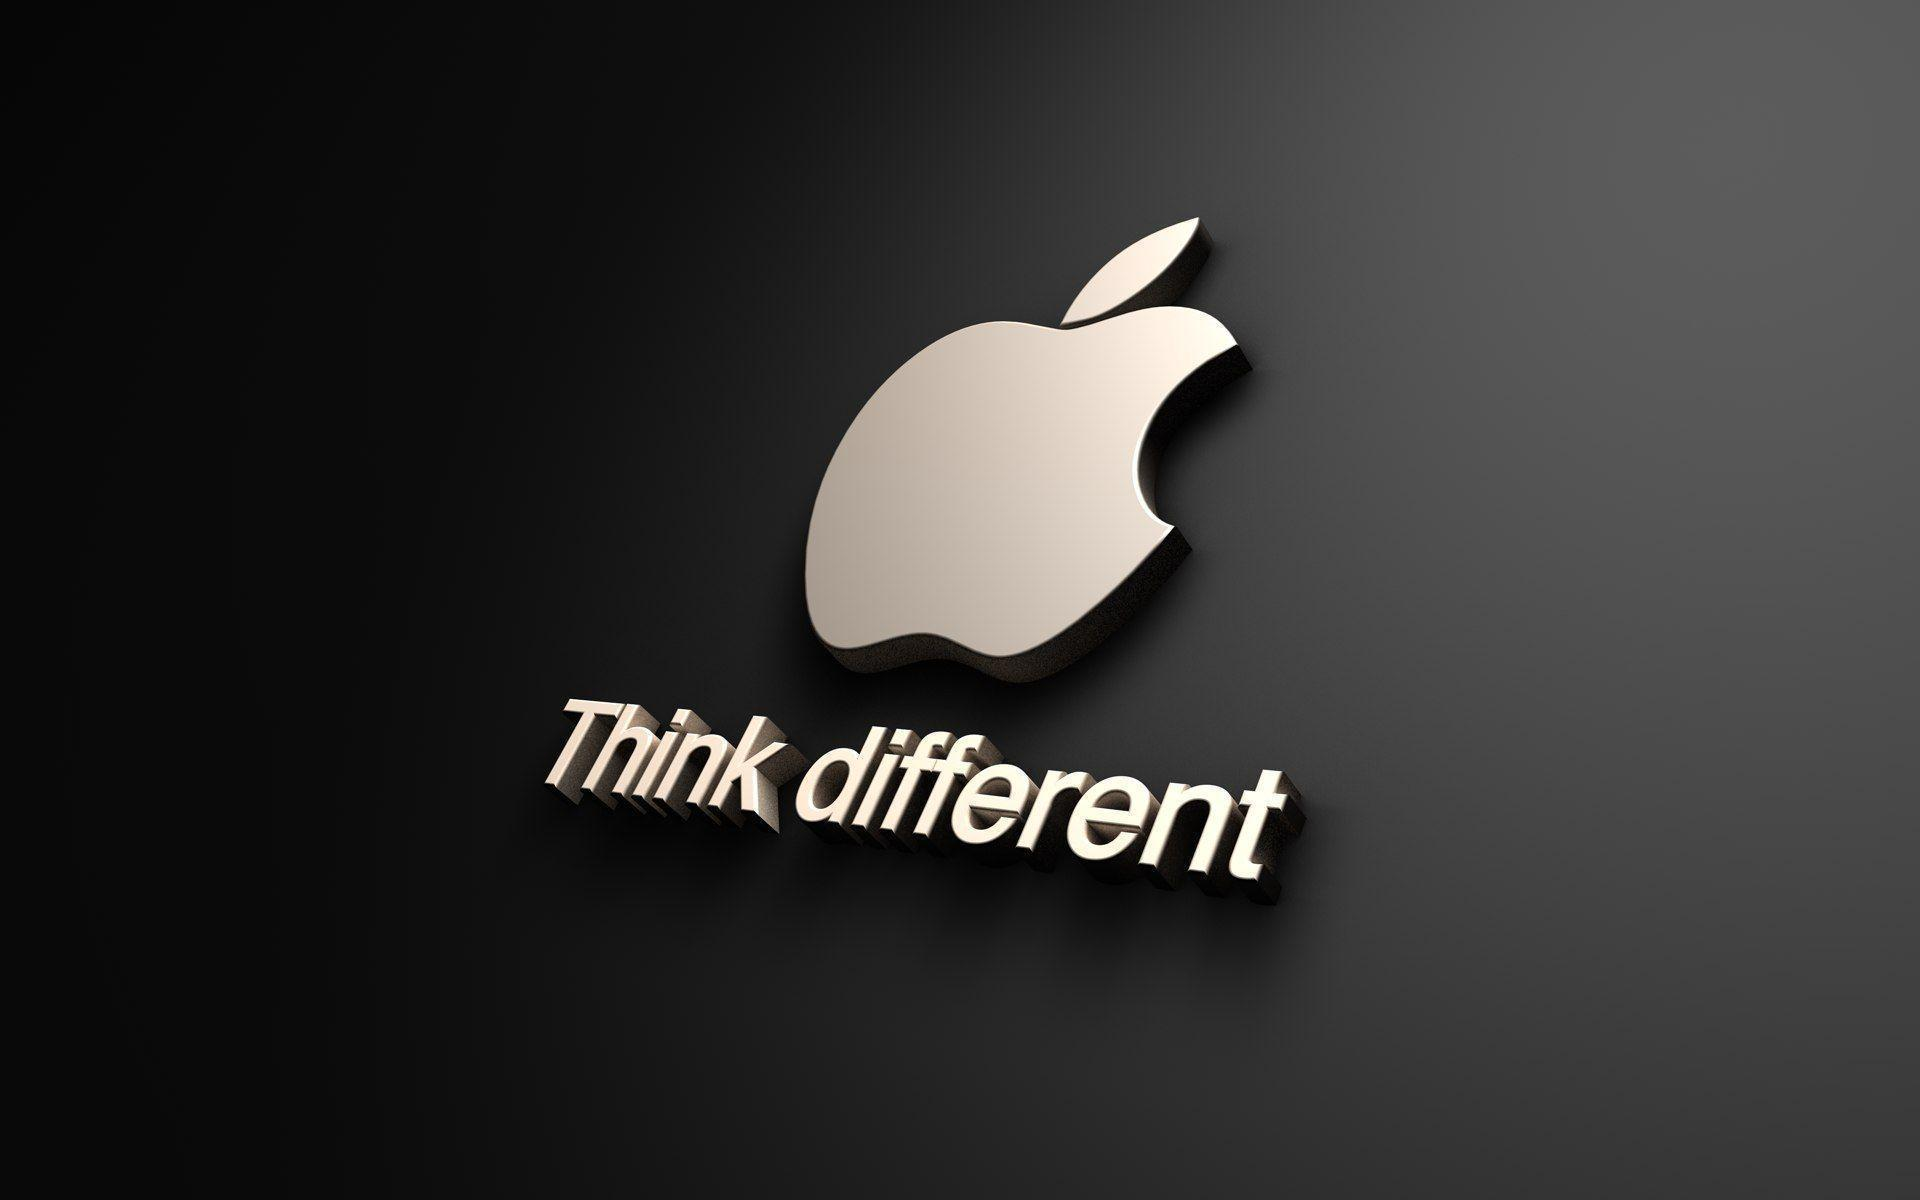 cool apple logo – 1920×1200 Download Free Wallpaper, Background ...